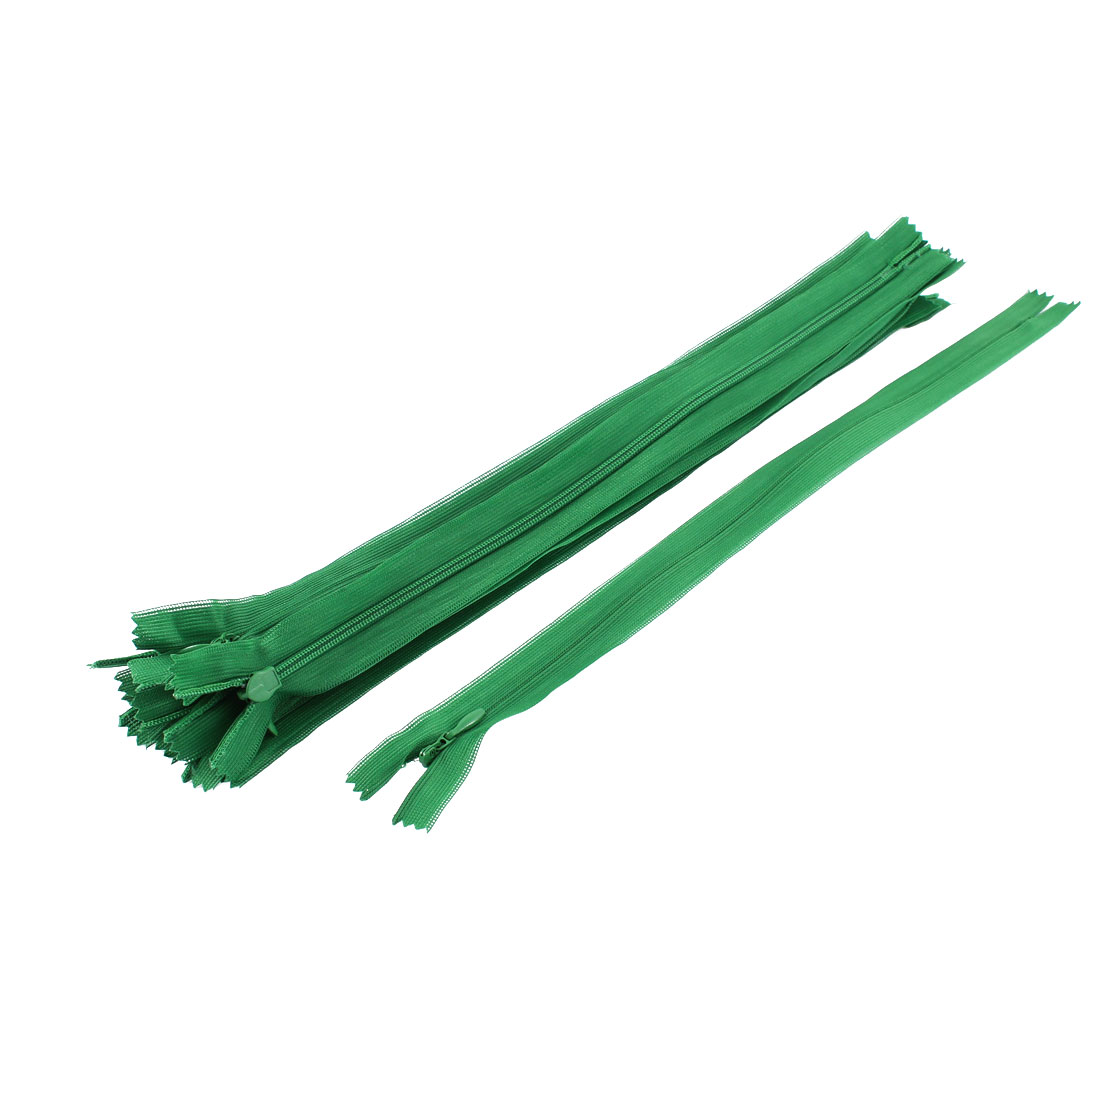 10 Pcs Green 30cm Length Nylon Zippers Zips for Clothes